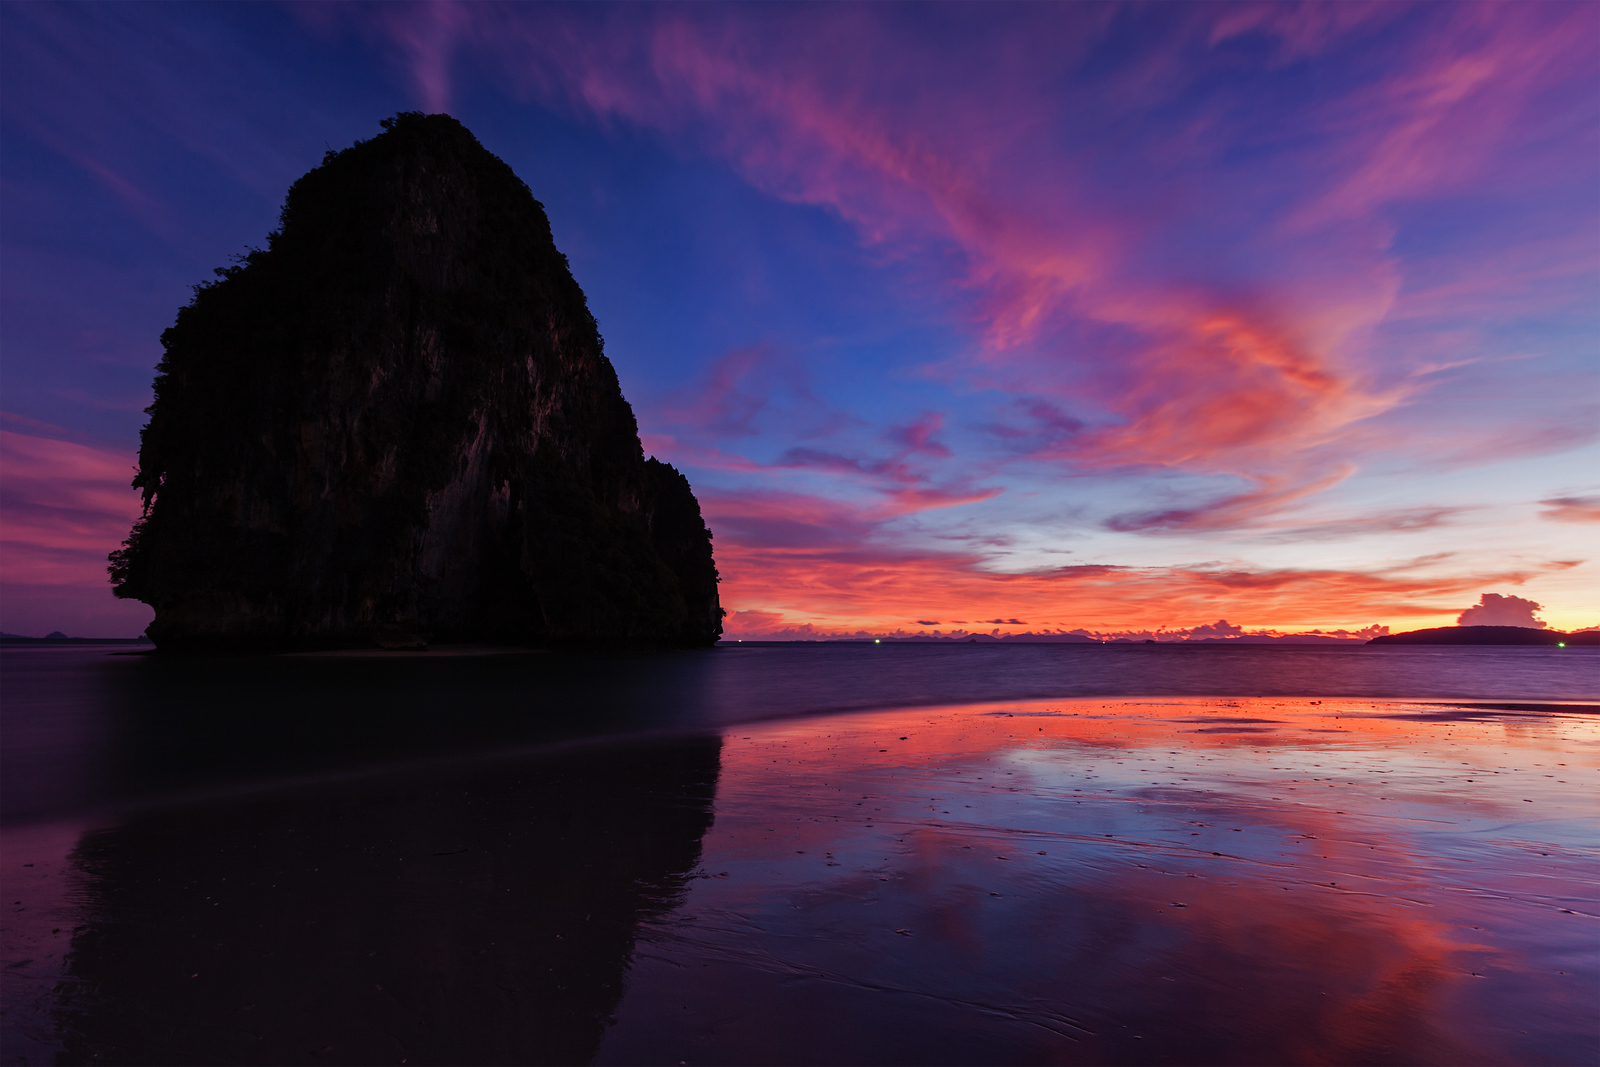 Sunset on Pranang beach. Railay , Krabi Province Thailand